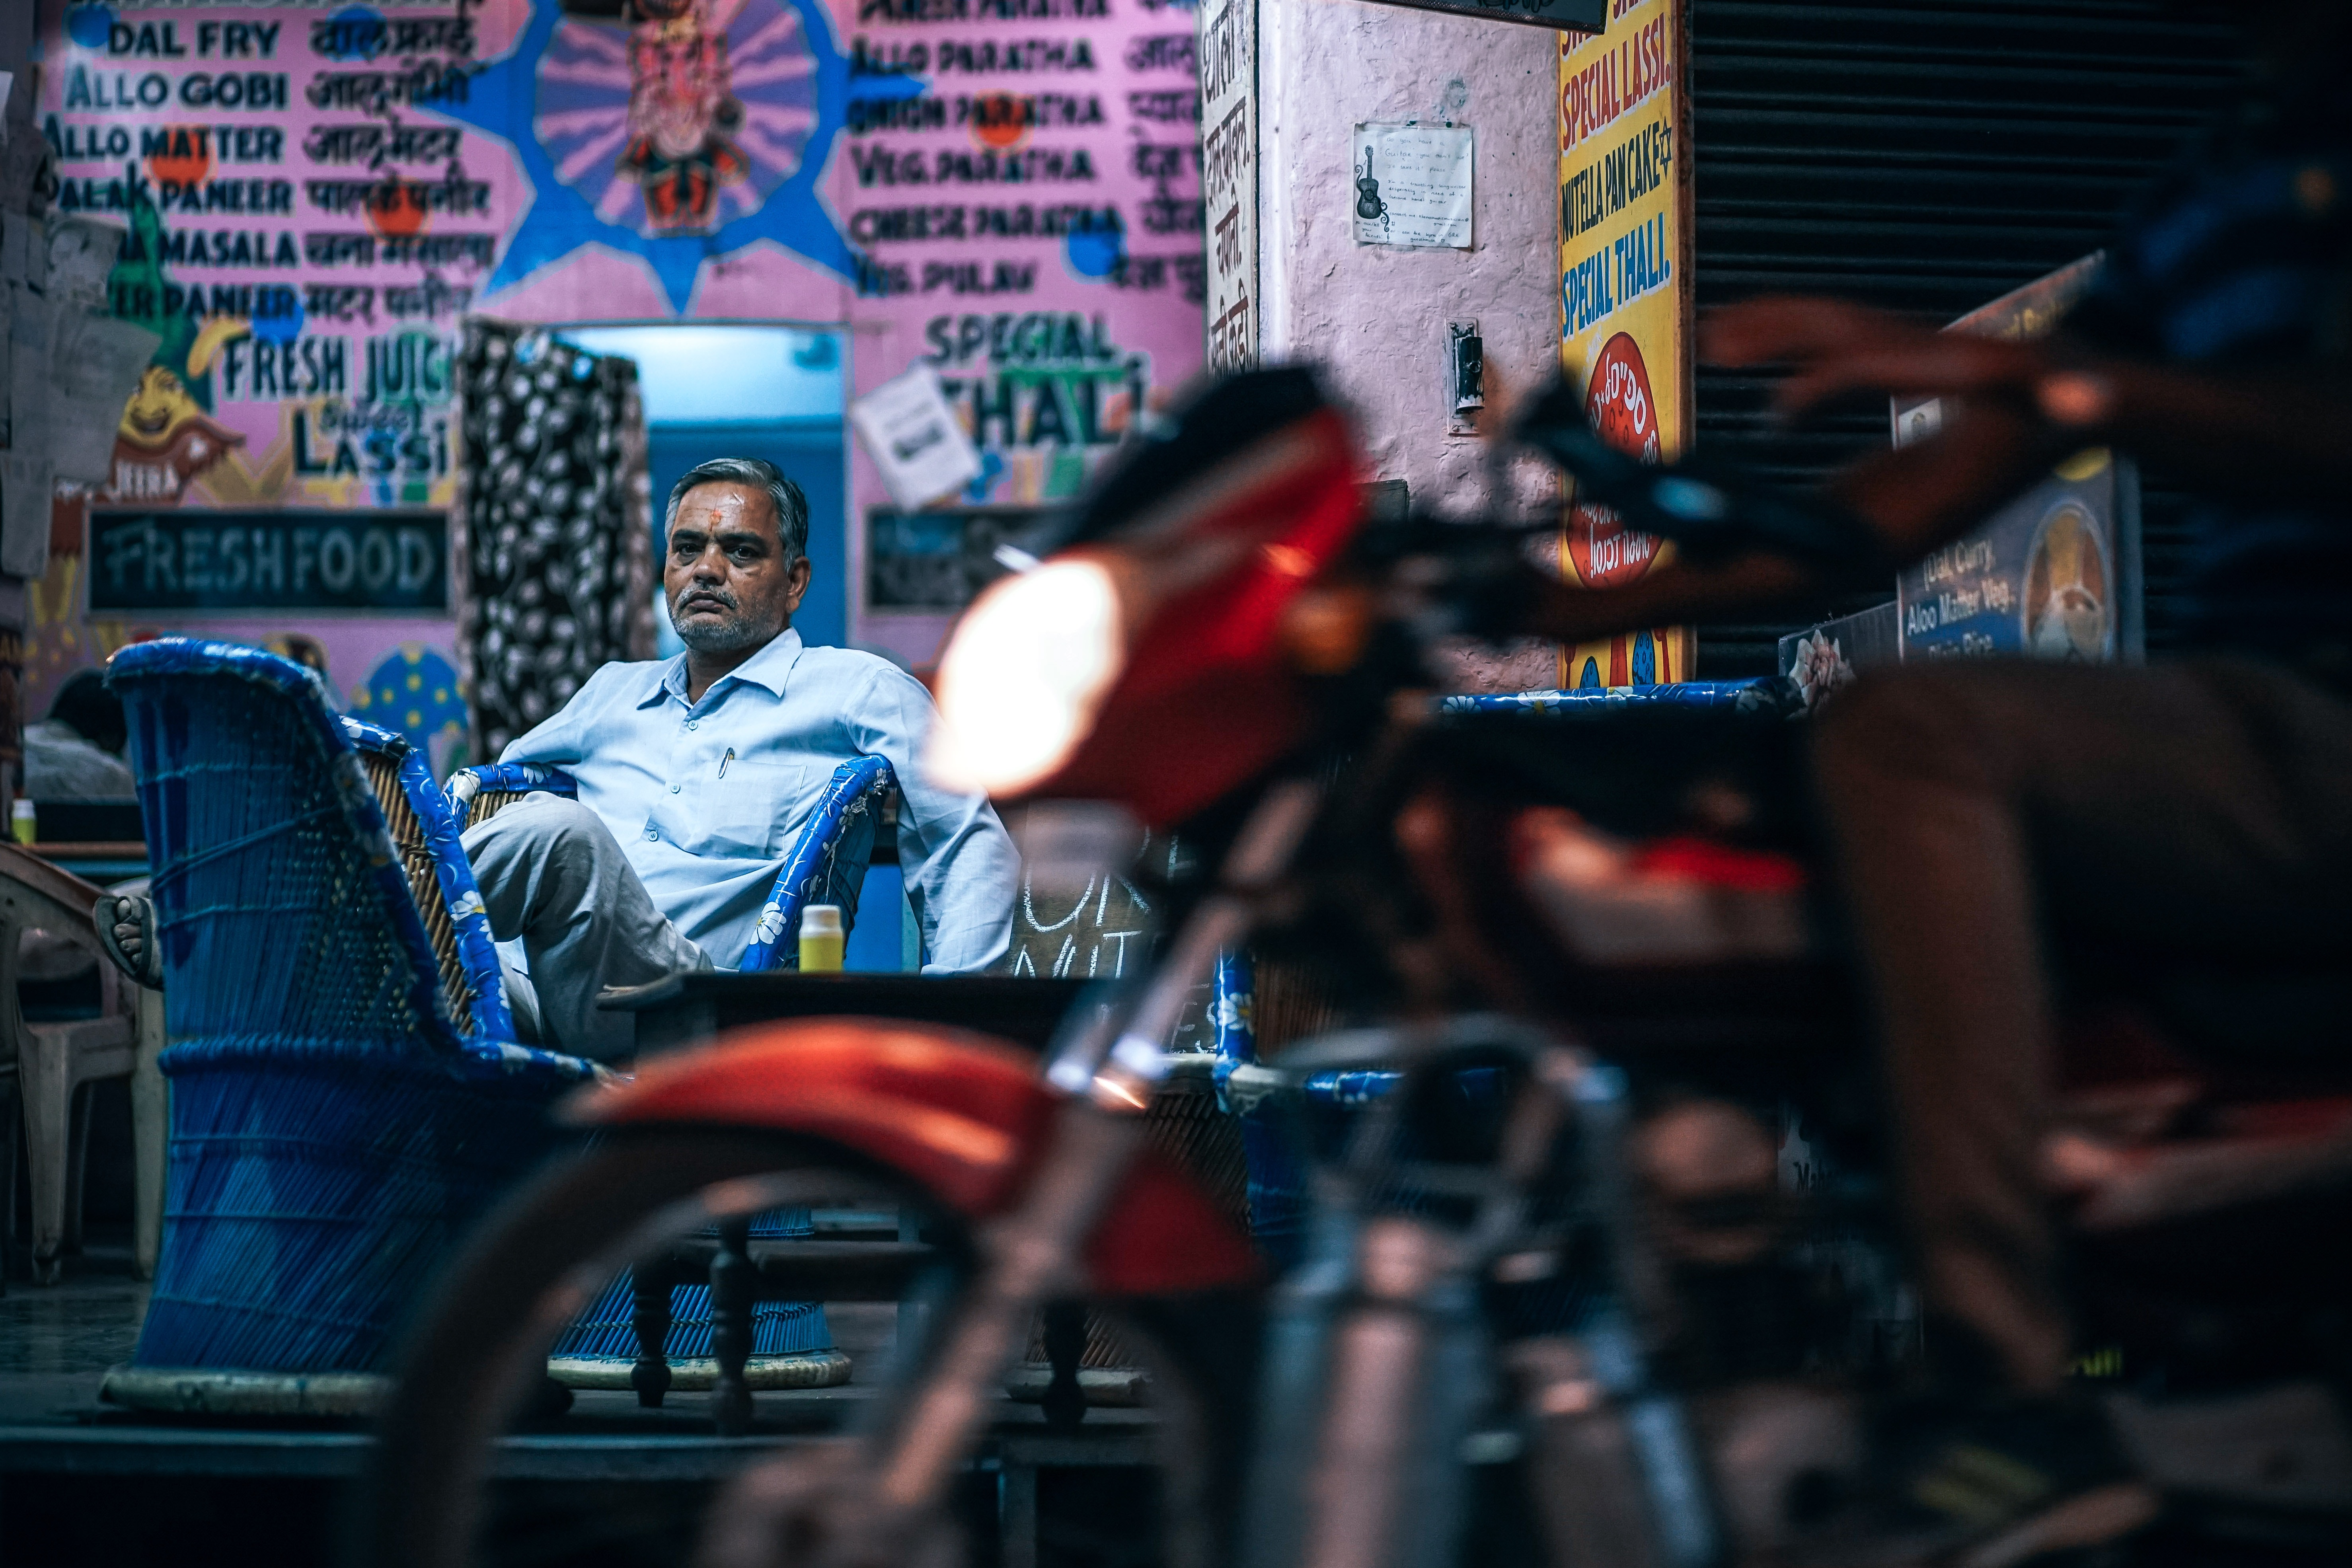 A tired, well-dressed, intensely focused man sitting in front of a food stand on a street at night, staring at an out-of-focus motorcycle in the foreground.